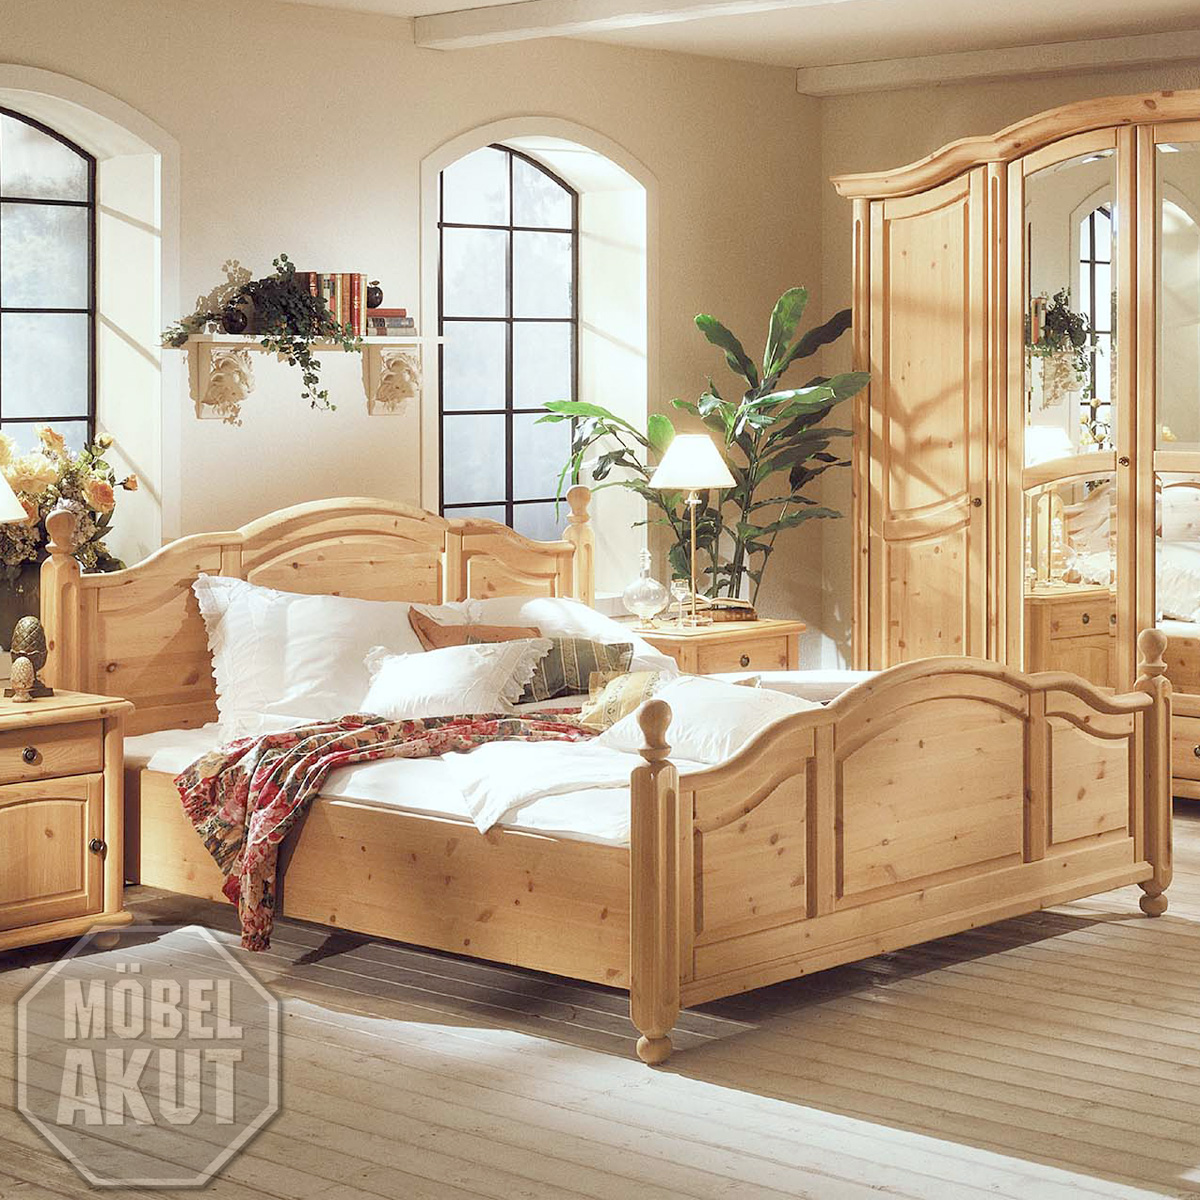 weihnachtsdeko trend 2015. Black Bedroom Furniture Sets. Home Design Ideas